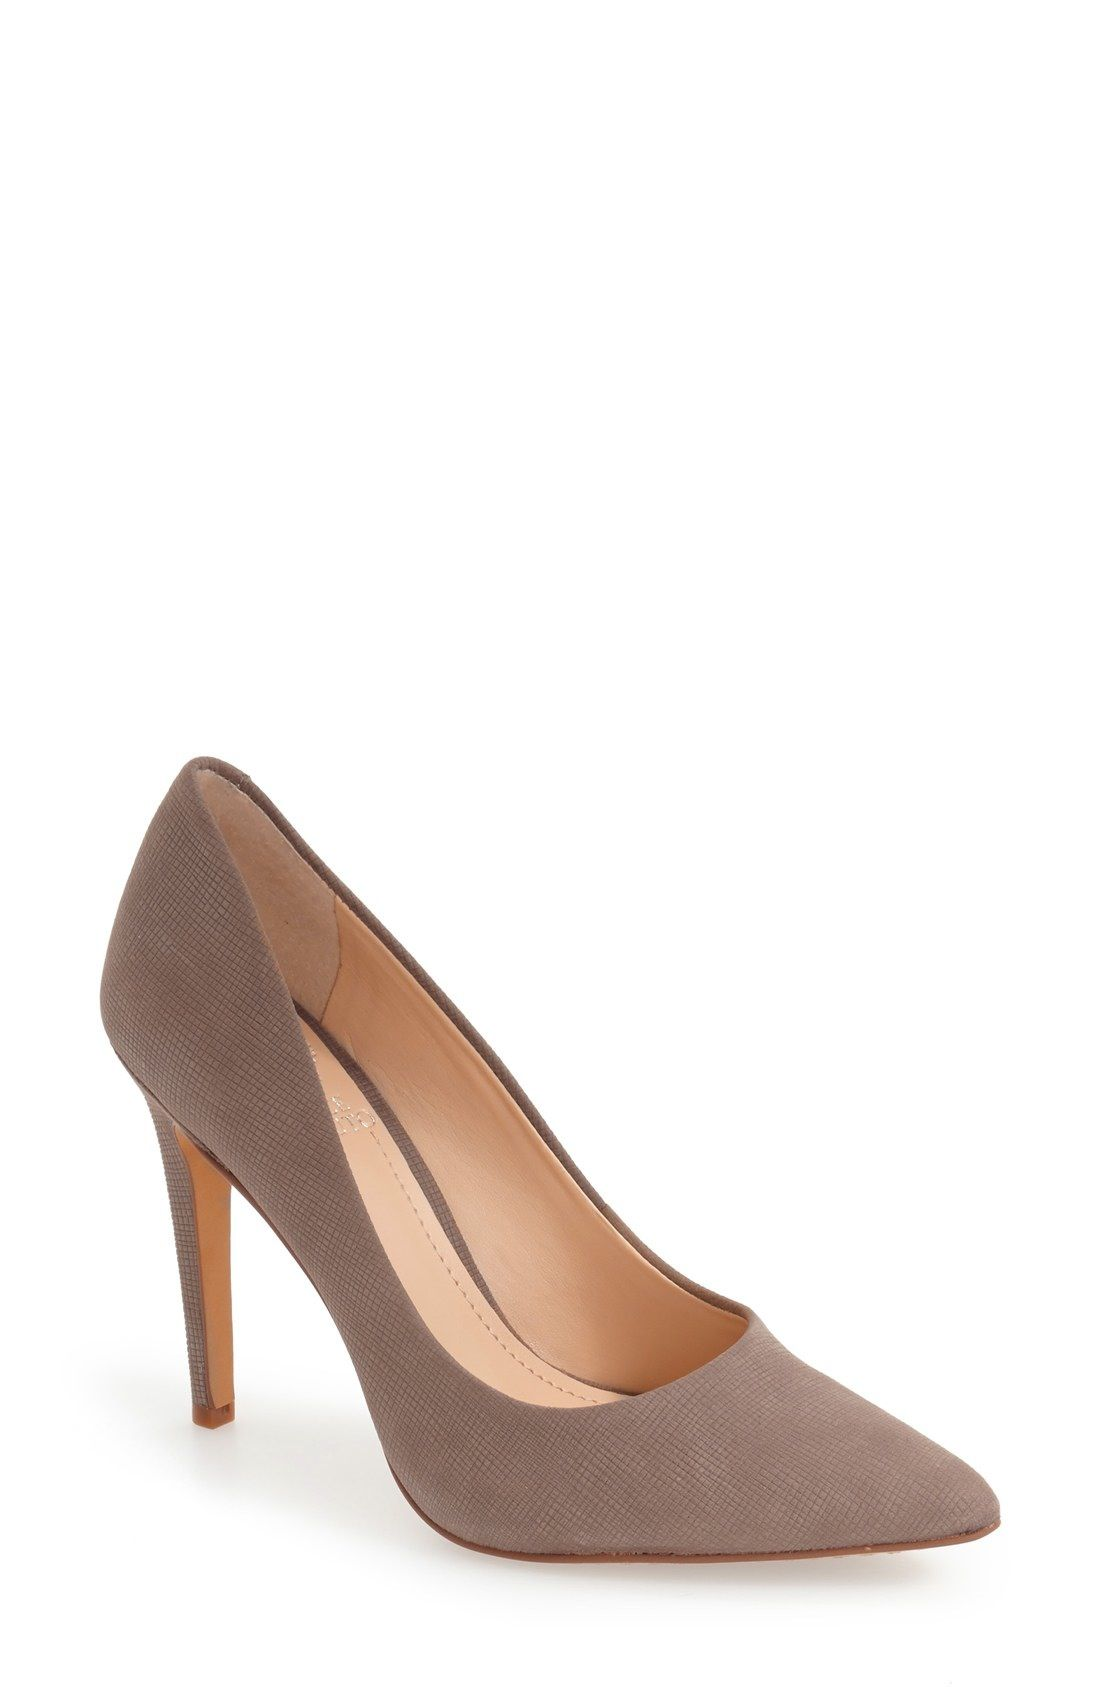 eed37ea74b Vince Camuto 'Kain' Pump available at #Nordstrom | Wedding ...